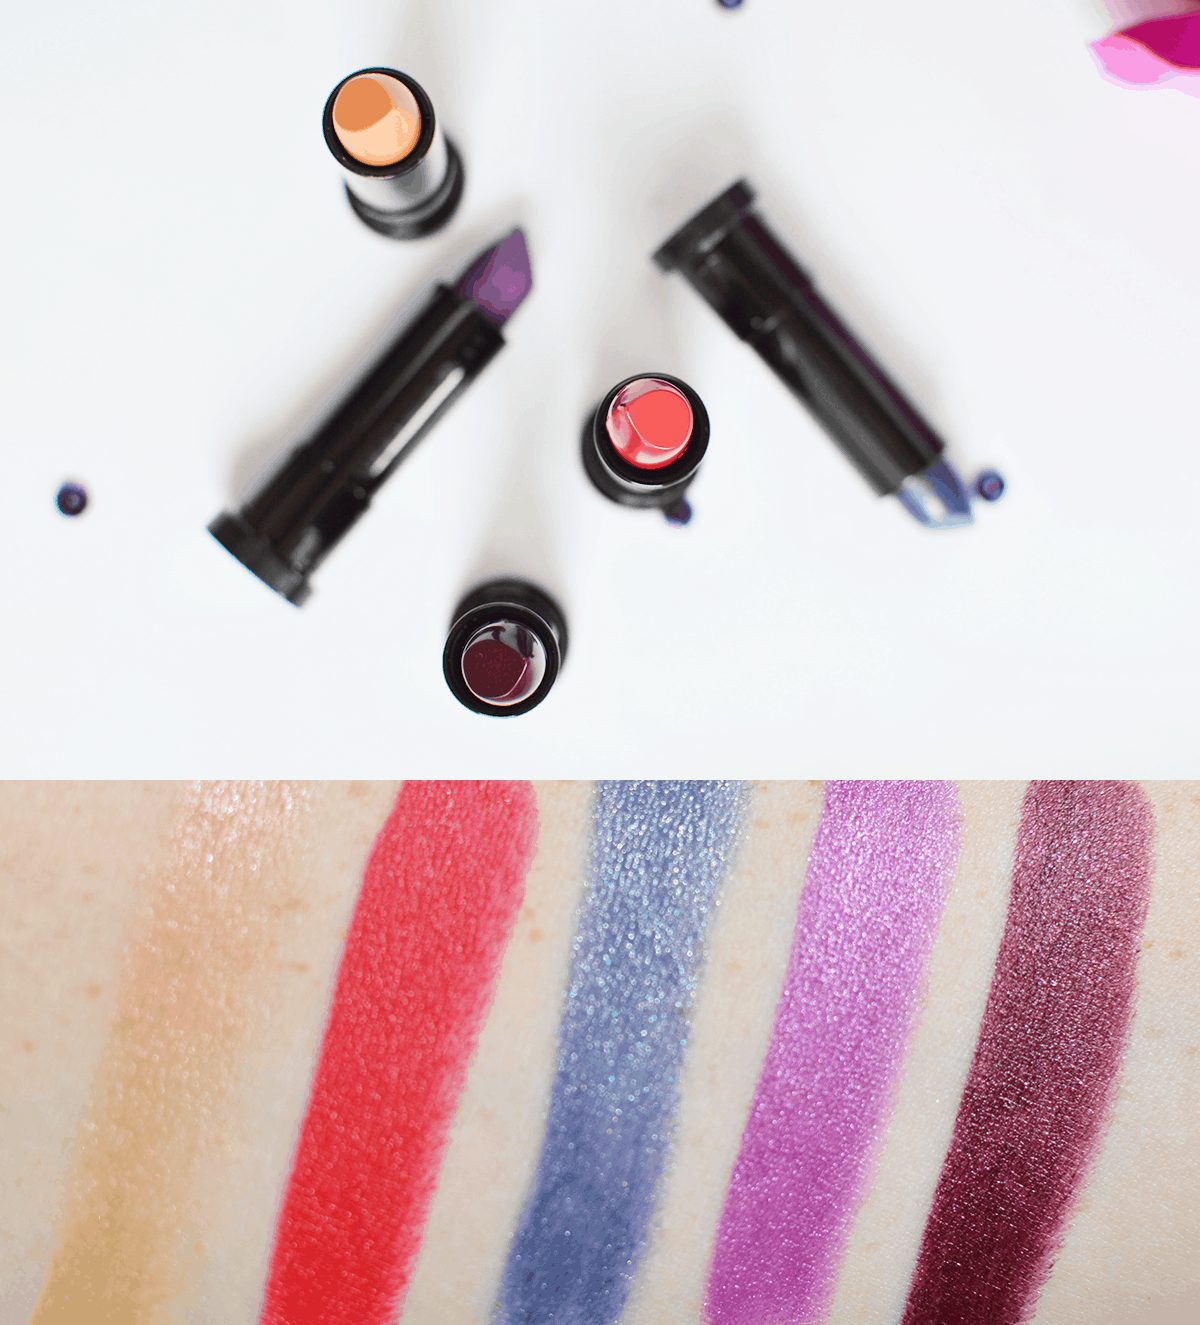 Urban Decay Alice Through The Looking Glass Collection (review & swatches) | oliveandivyblog.com